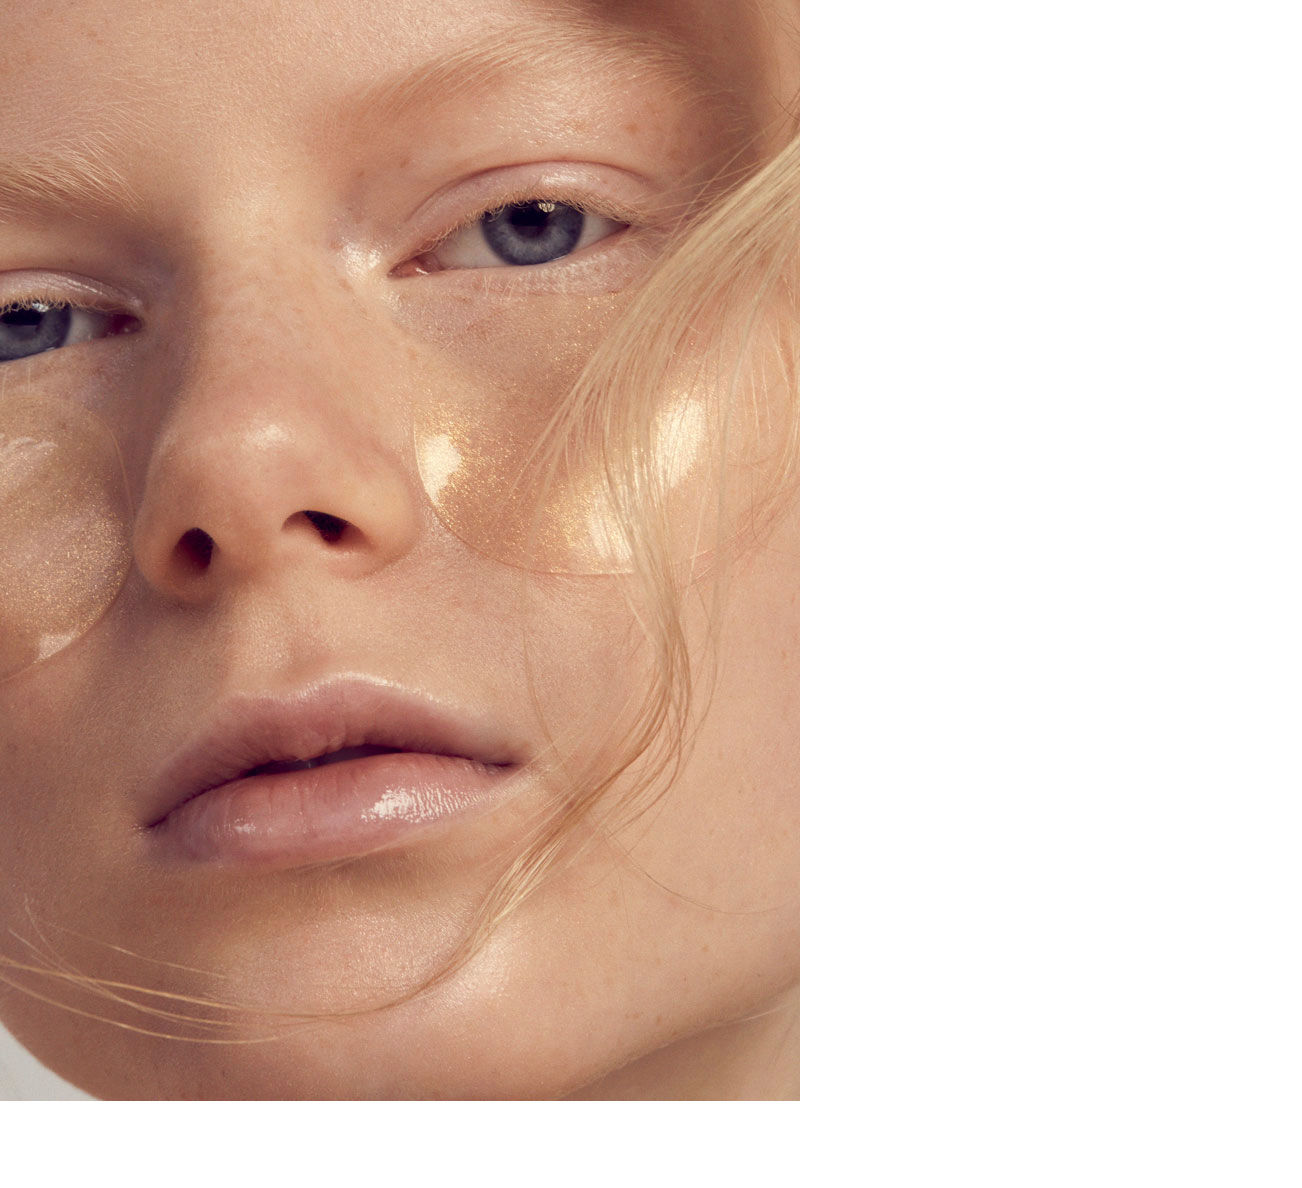 COSMOPOLA | Beauty work by FRAUKE FISCHER